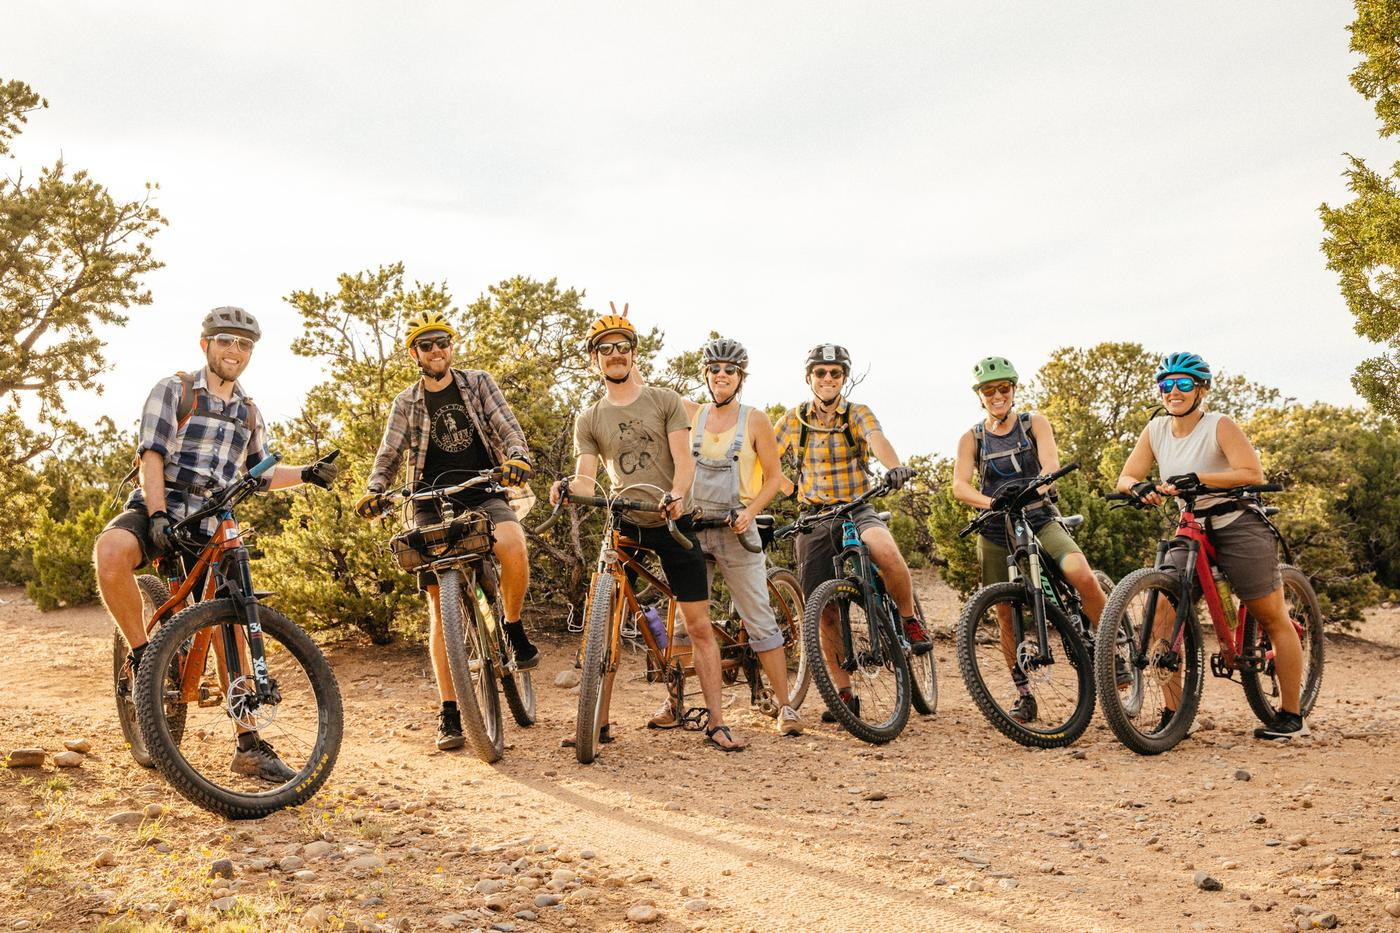 Building Community at Sincere Cycles in Santa Fe